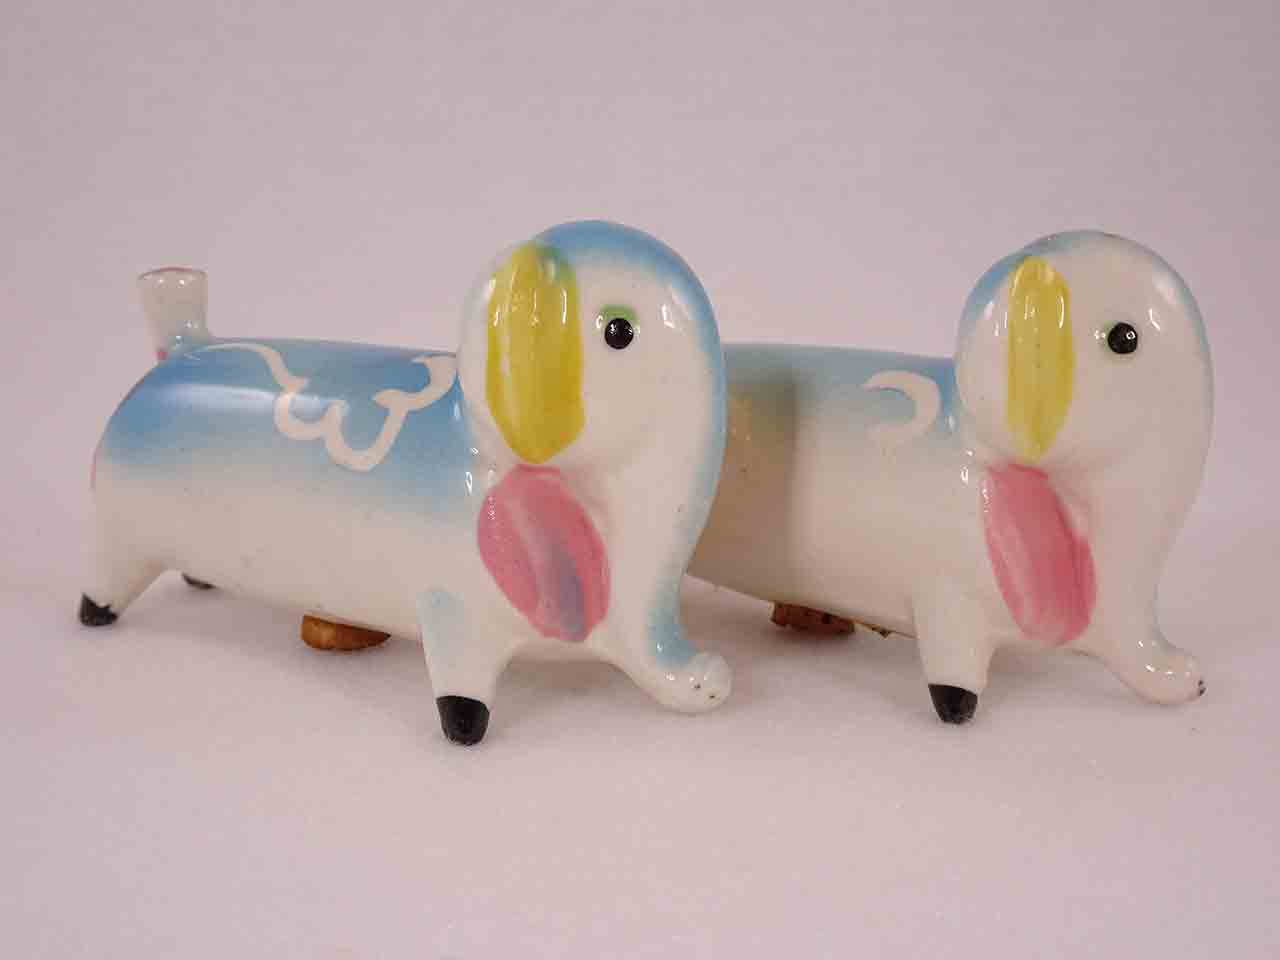 Longer Animals with White Squiggly Lines salt and pepper shakers - elephants